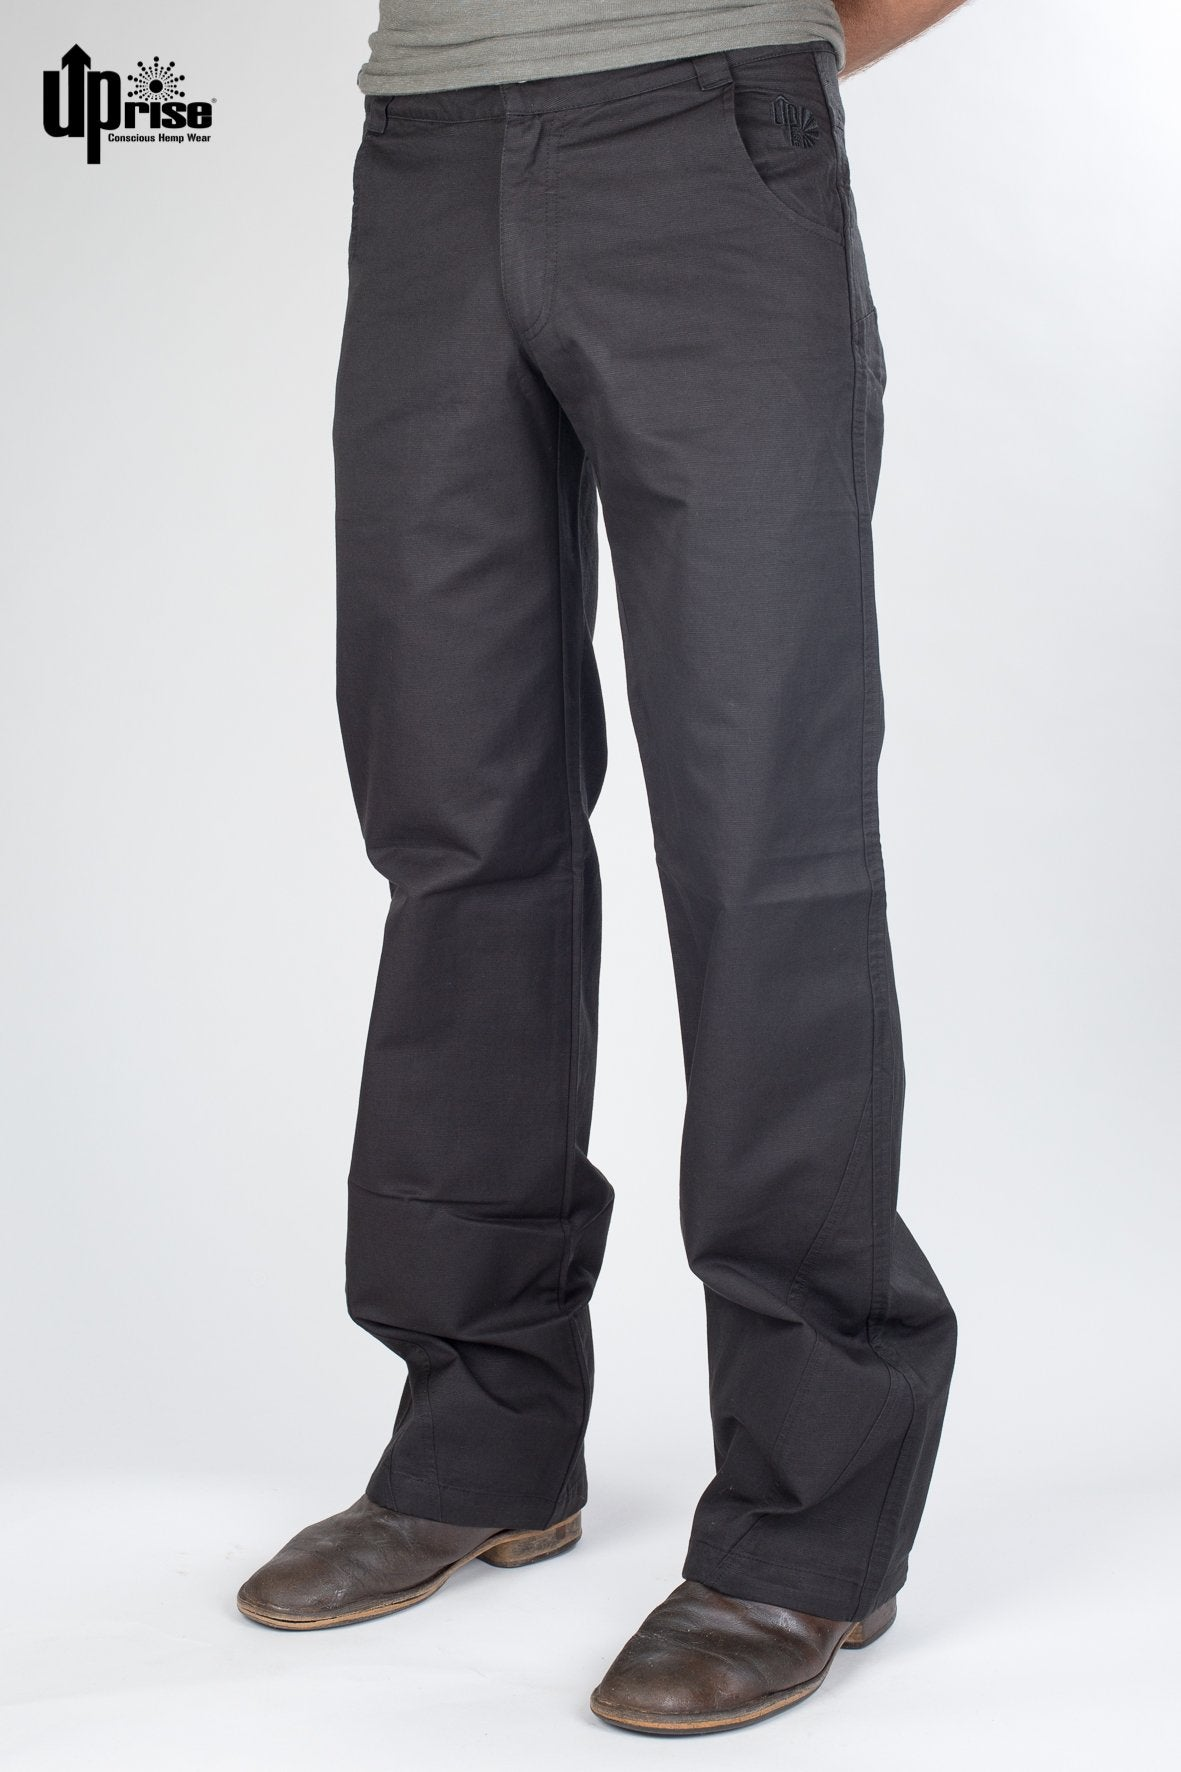 Hose UpRise - Men's Pants Black - bio und fair